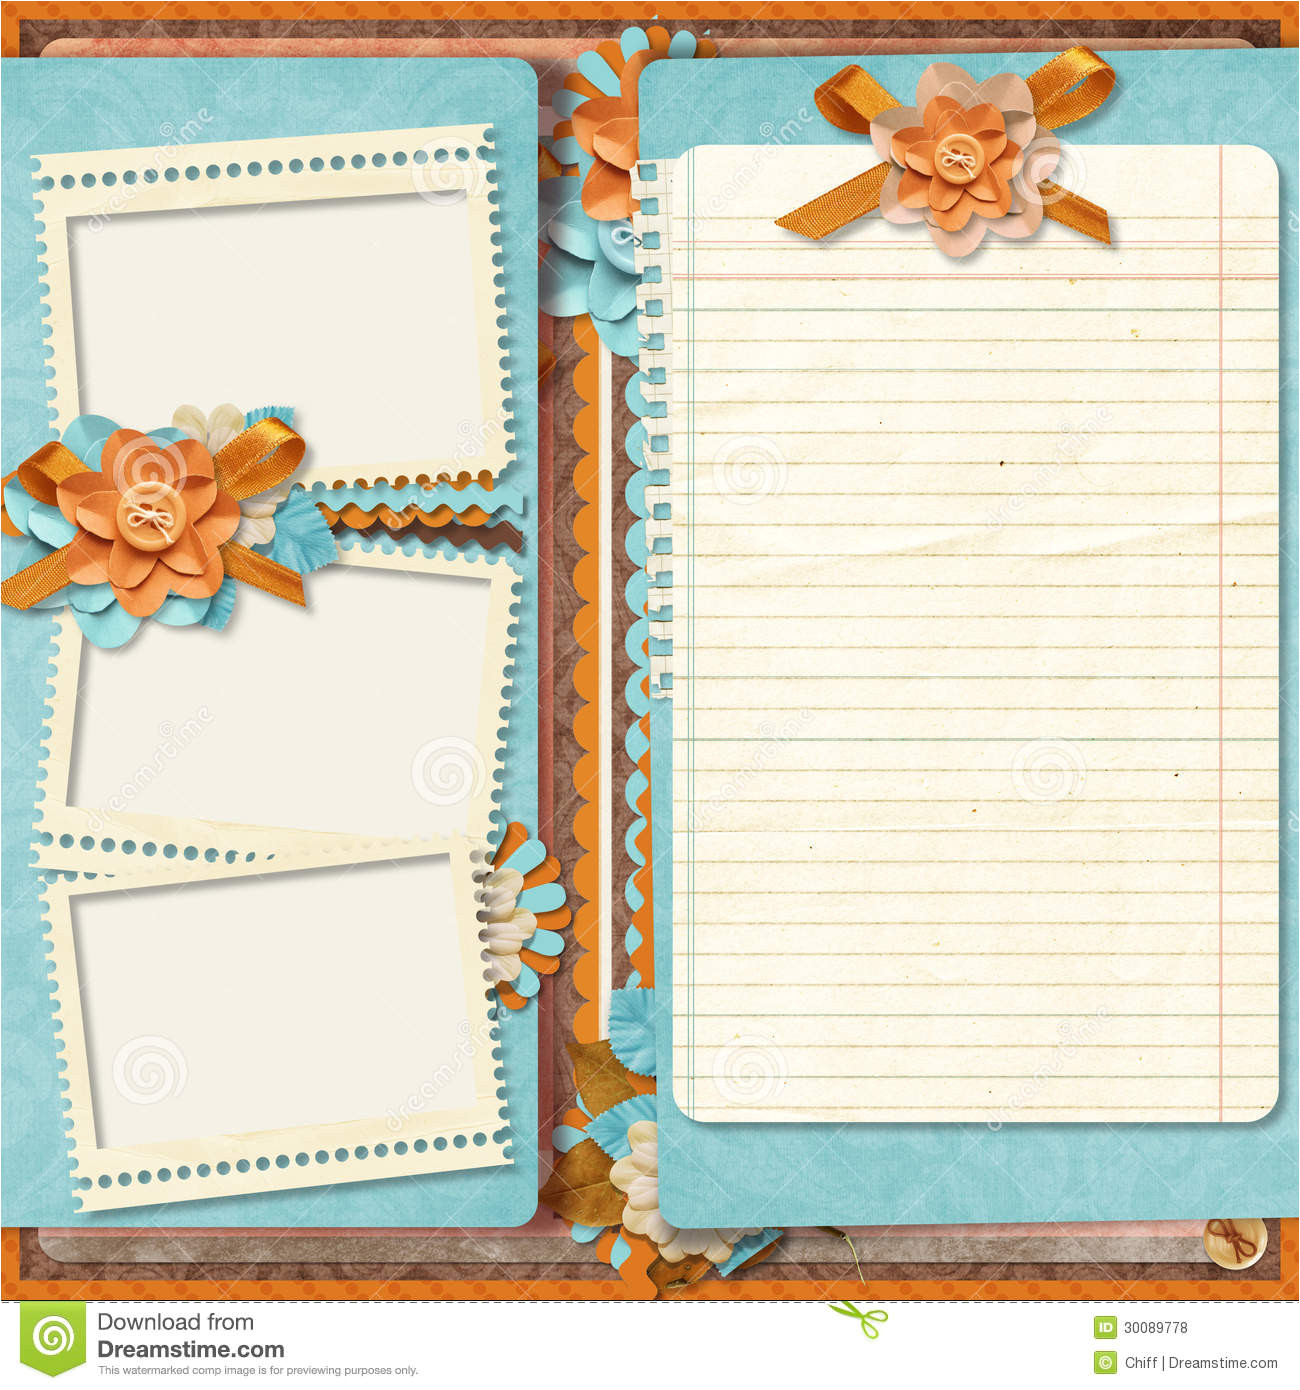 Templates for Scrapbooking to Print 16 Design Digital Scrapbook Templates Images Digital